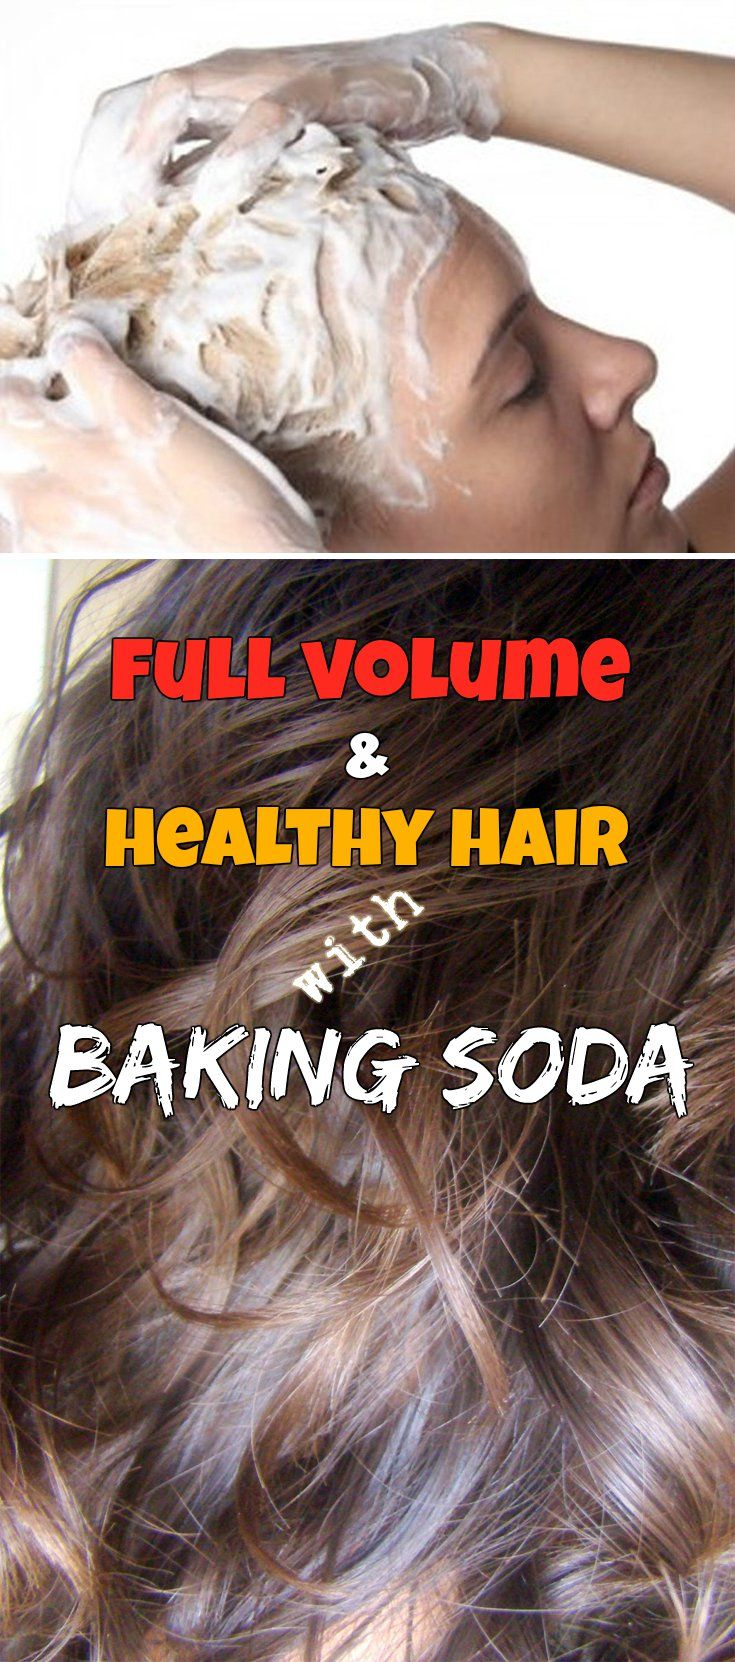 Full volume and healthy hair with baking soda! - Beauty-Total.com